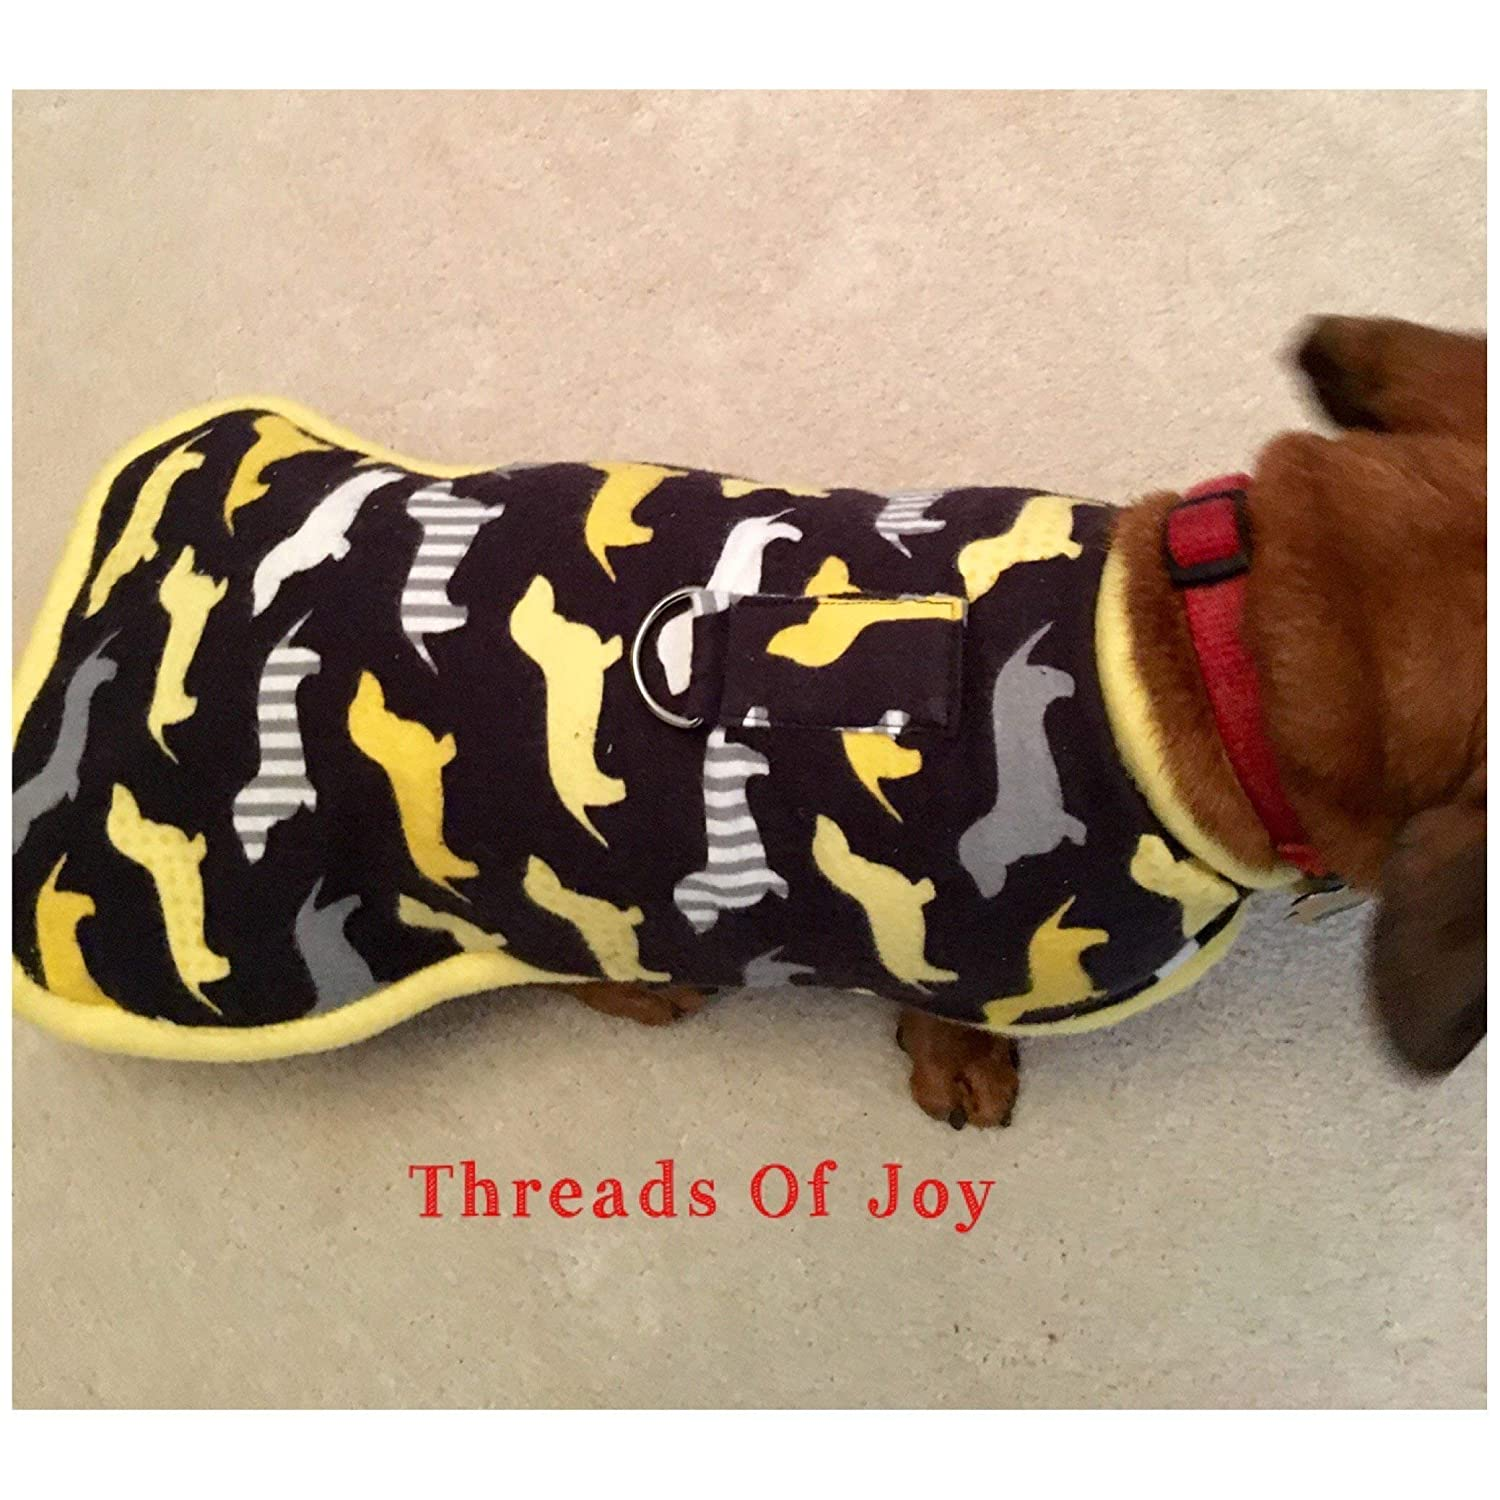 Dachshund Dog Coat Small Dogs Dachshund Pajamas Dachshund Gifts Dachshund Fleece Dachshund Clothing